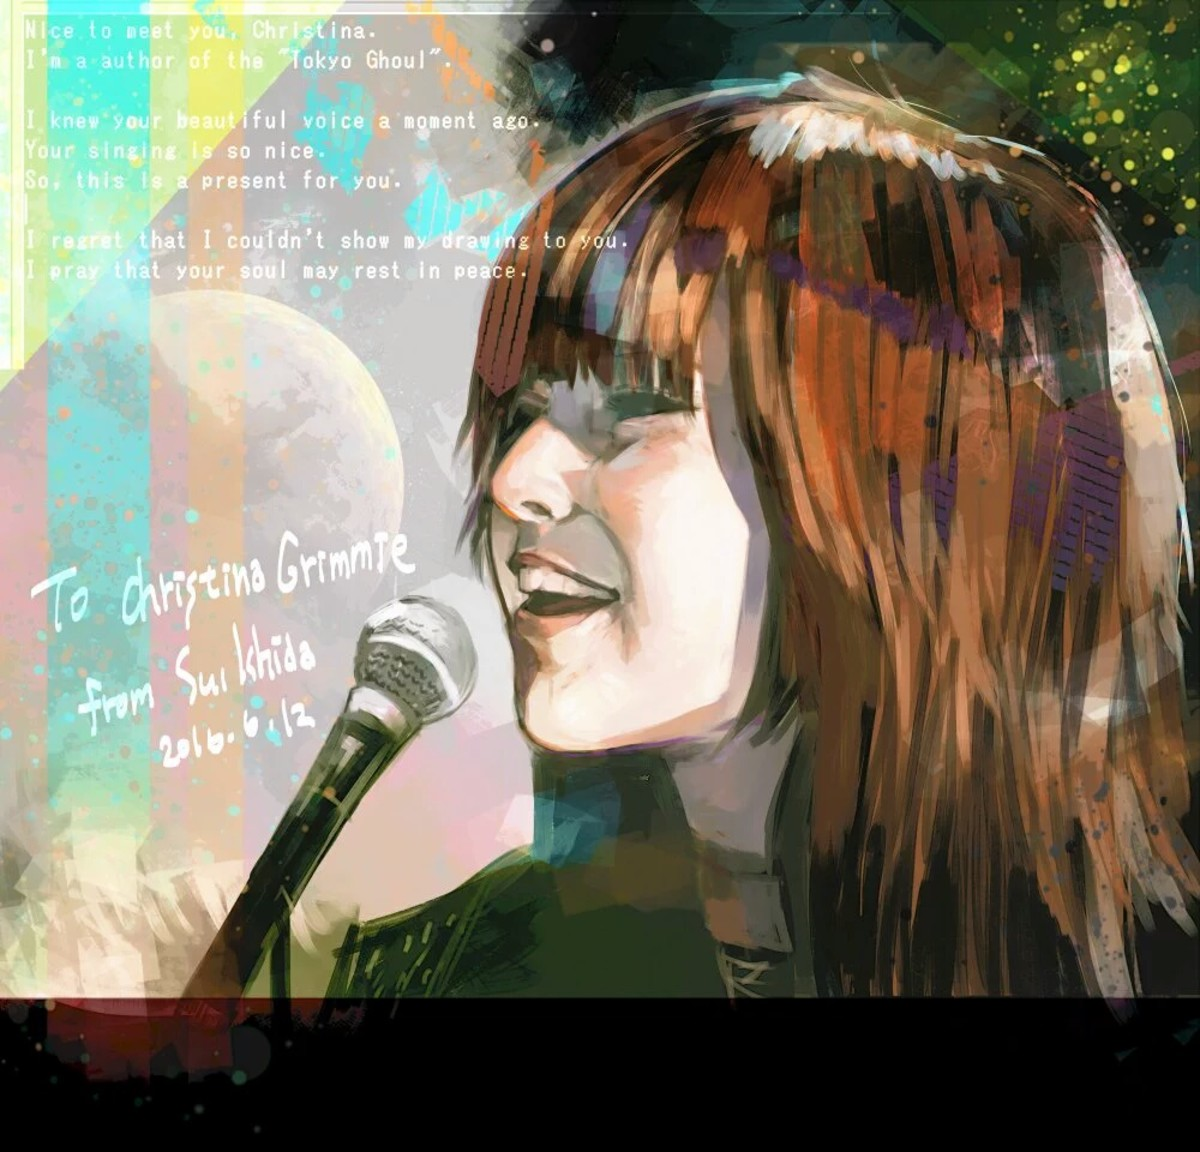 Ishida's tribute to Christina Grimmie.